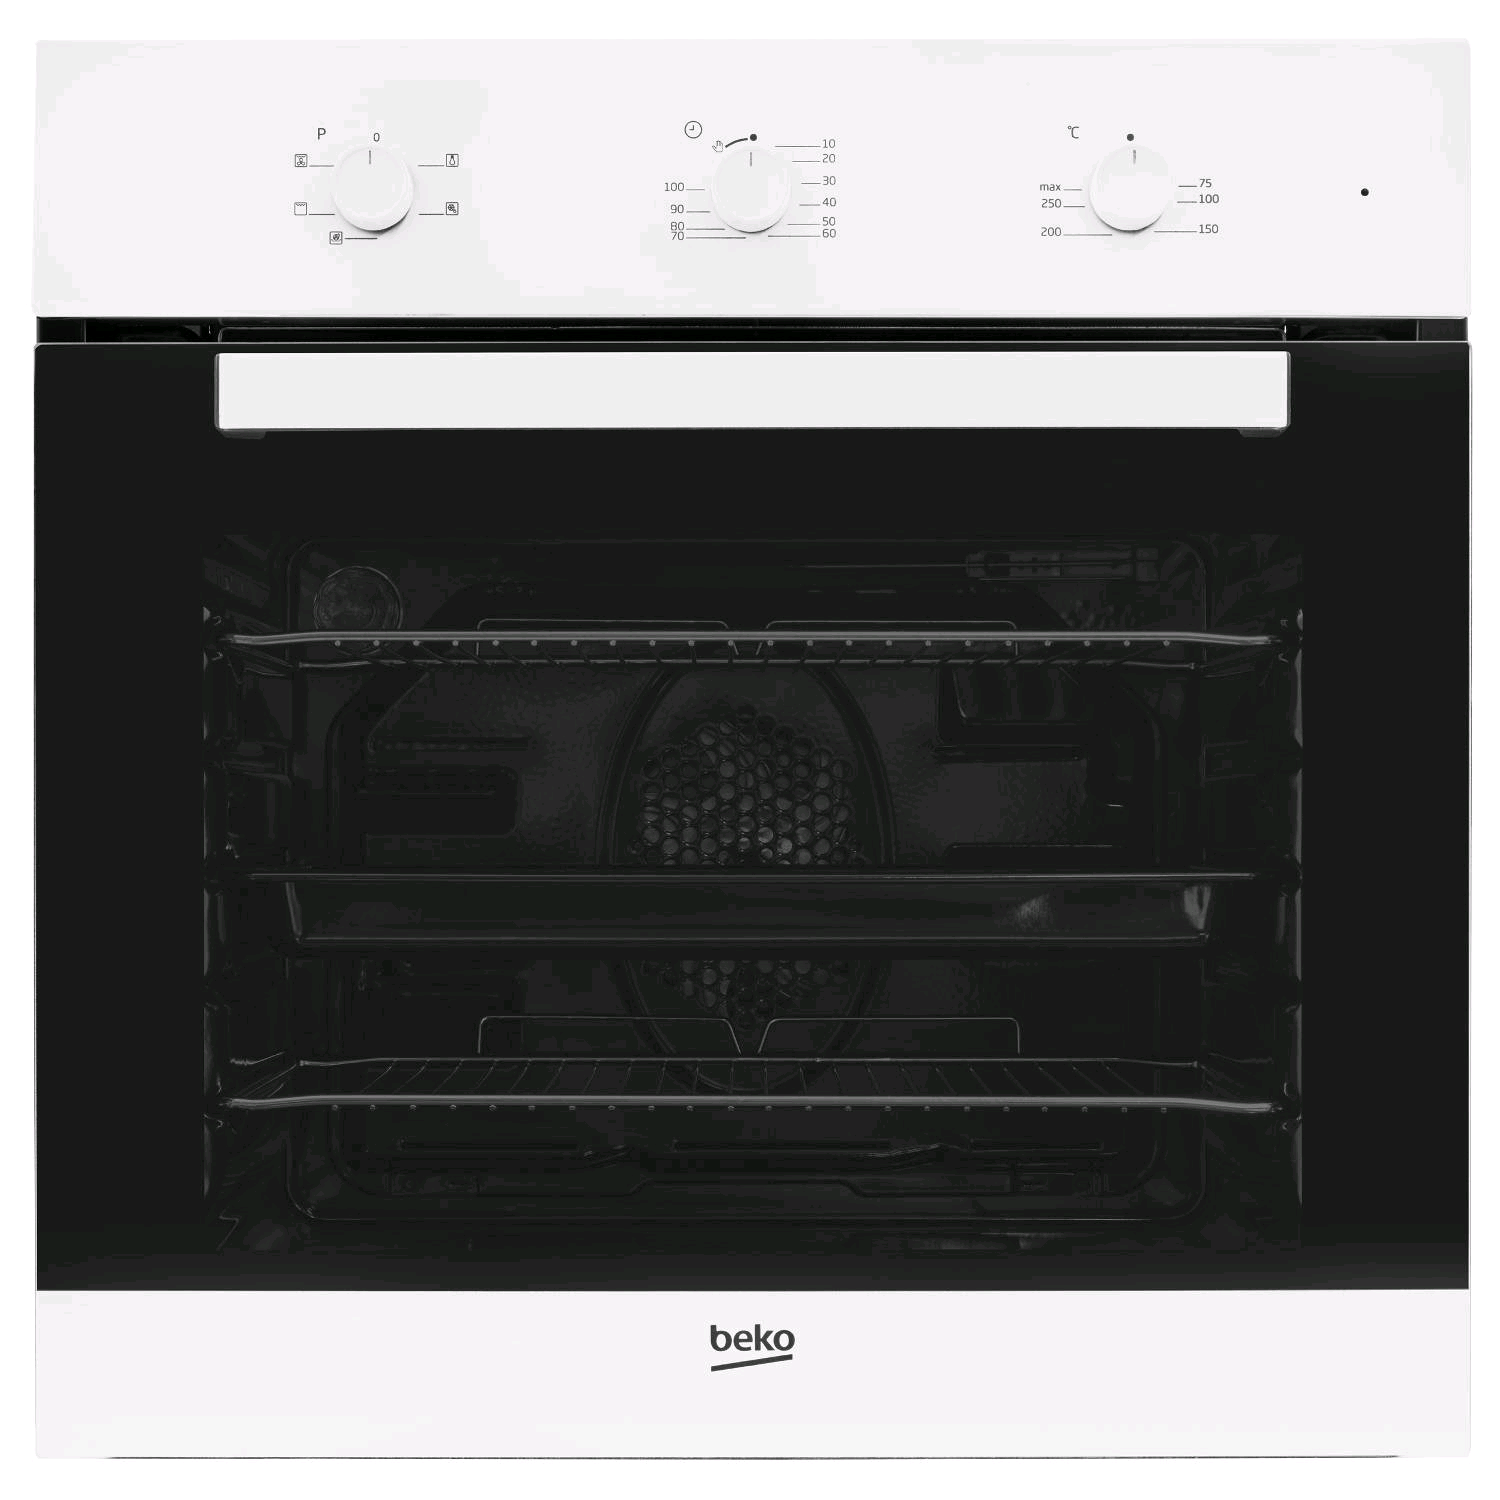 Beko Built in Single Oven Mechanical Minute Minder